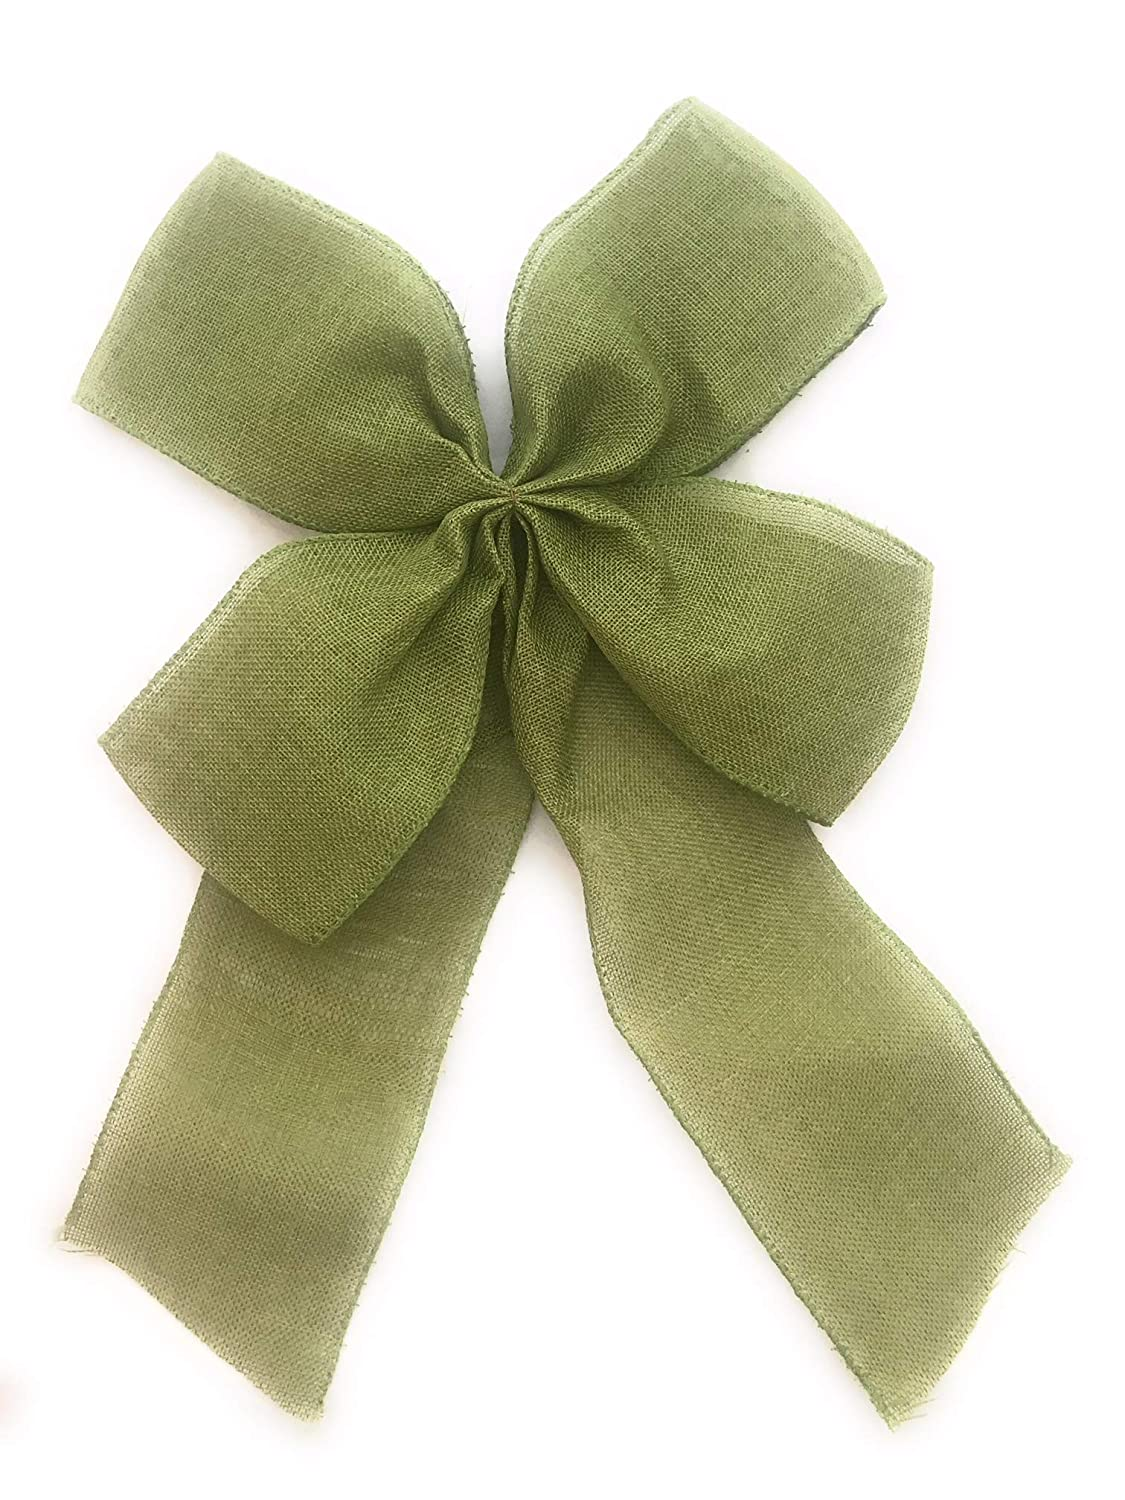 Above All Burlap Bow for Decorating with Wire Edge-Fall Colors (Green) Above All Goods